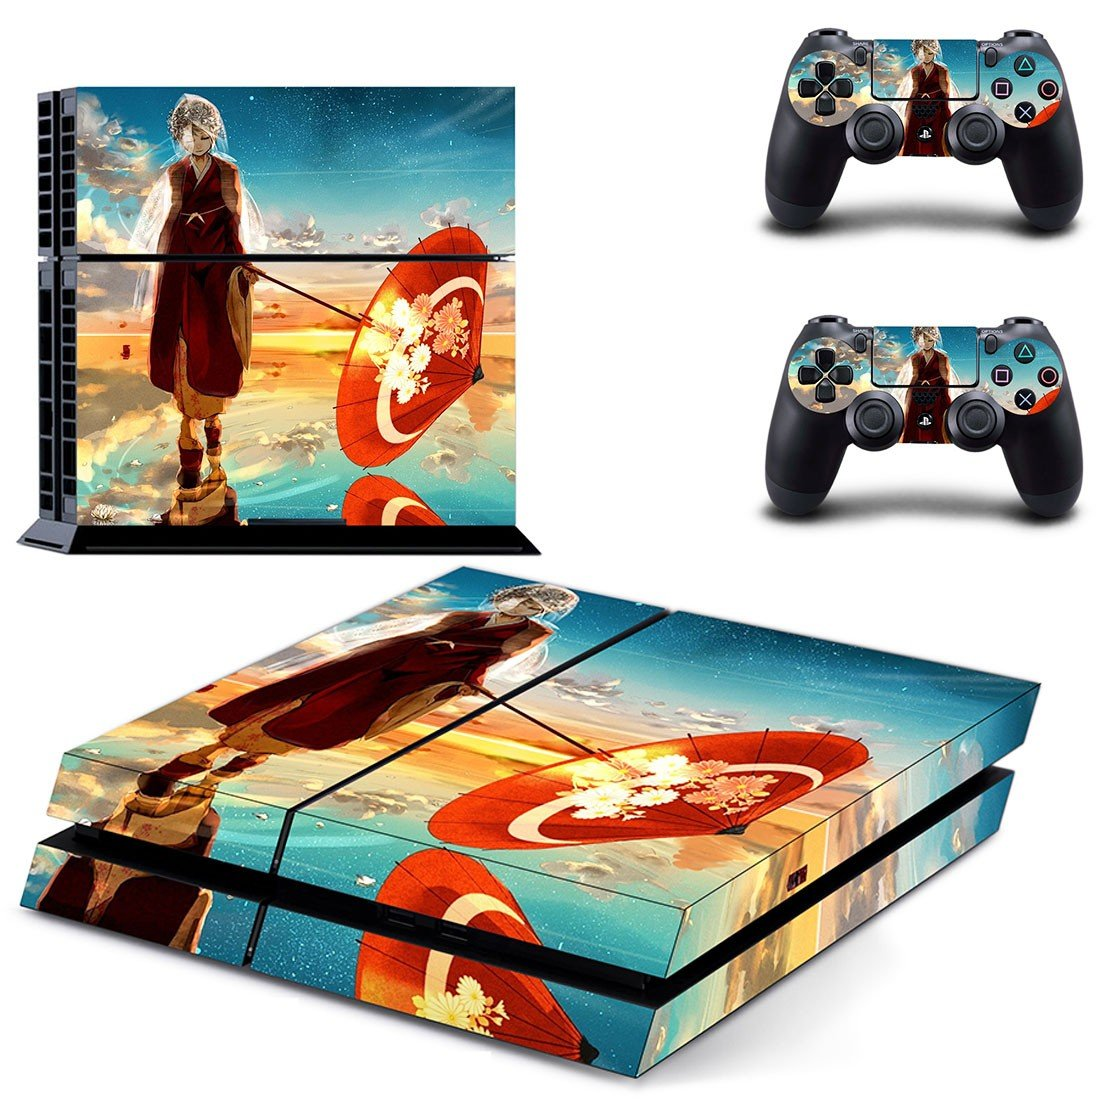 Anime water umbrella decal skin sticker for PS4 console and controllers